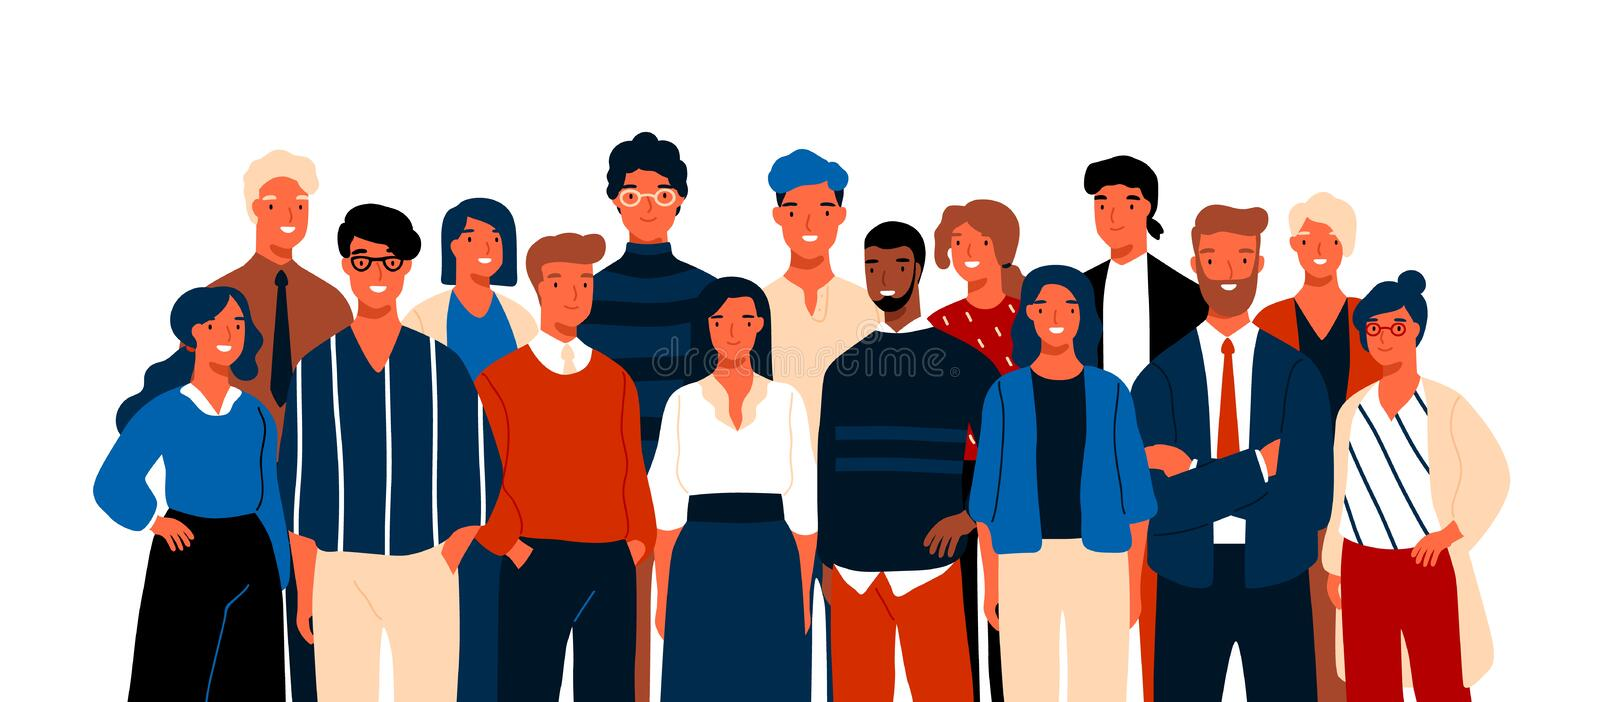 Group portrait of funny smiling office workers or clerks standing together. Team of cute cheerful male and female stock illustration